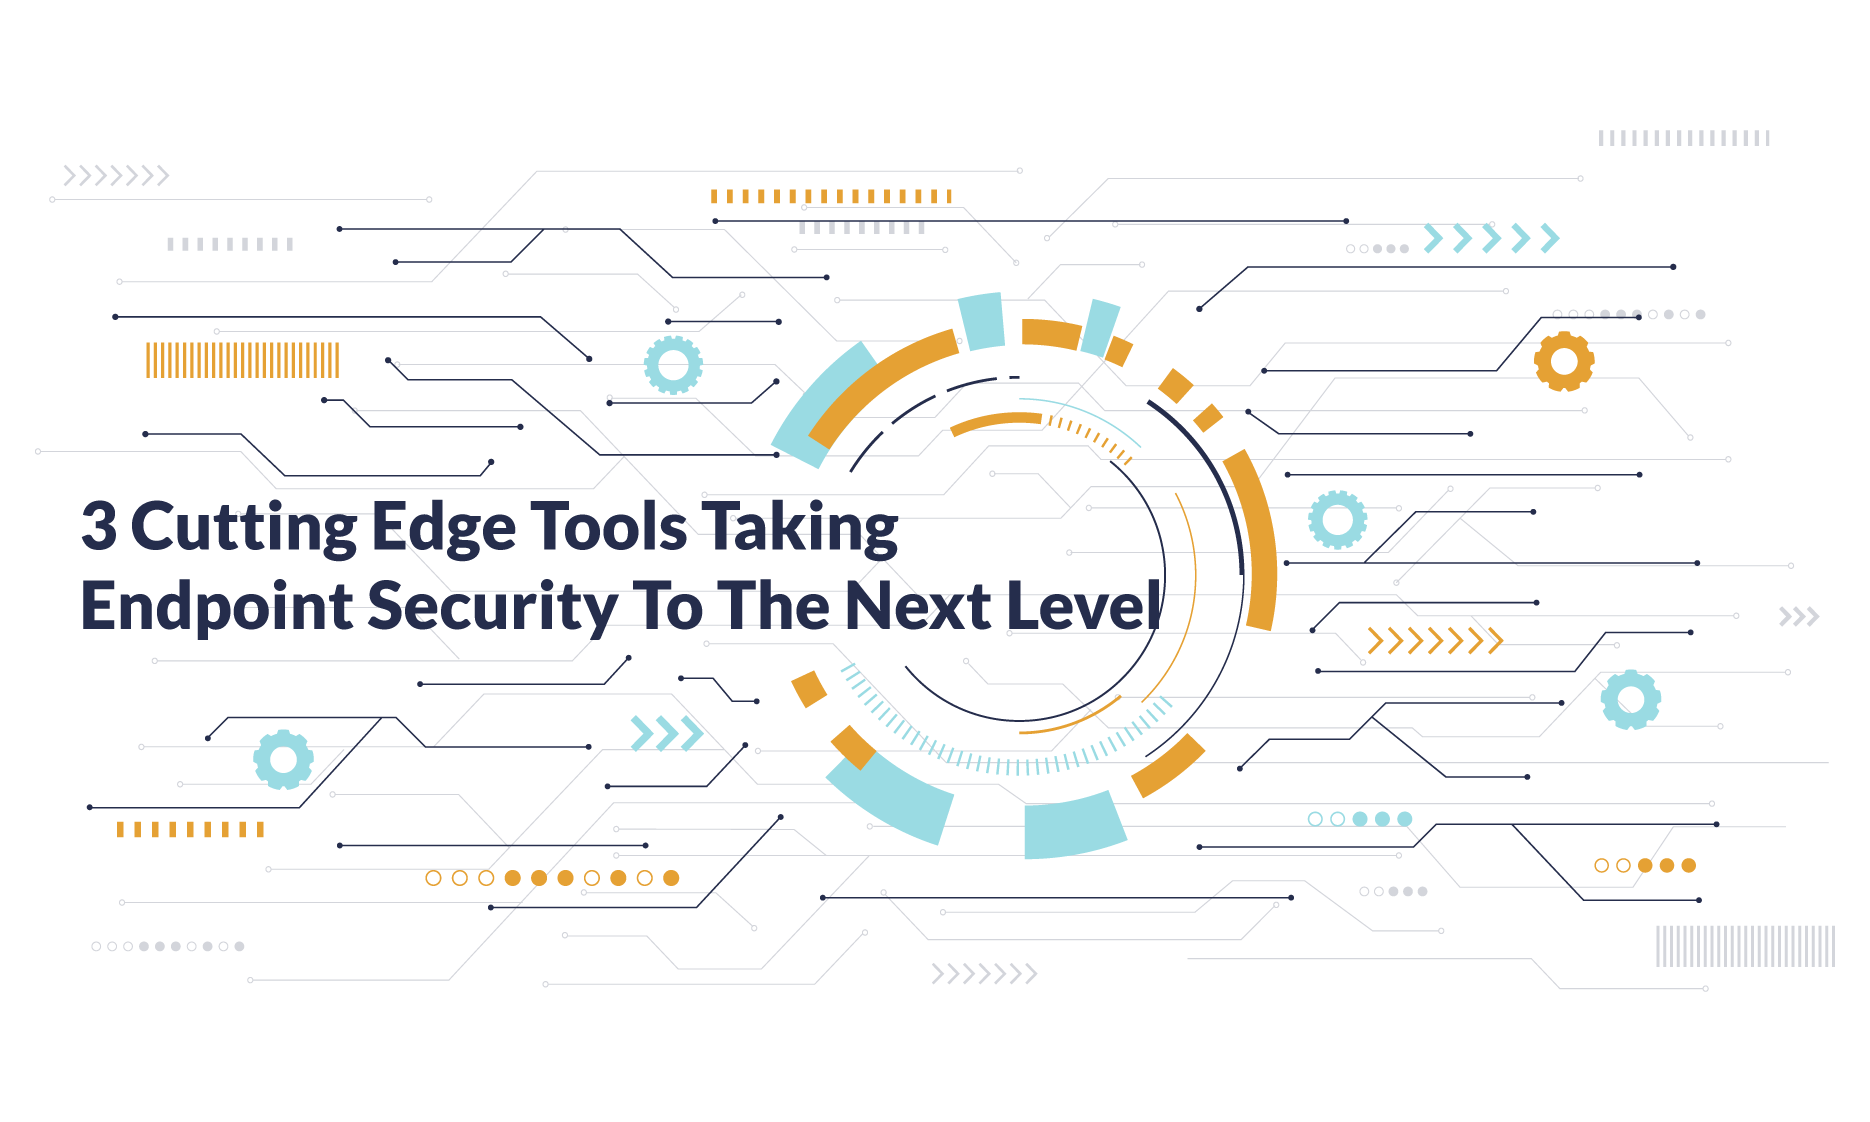 3 Cutting-Edge Open Source Tools Taking Endpoint Security To The Next Level